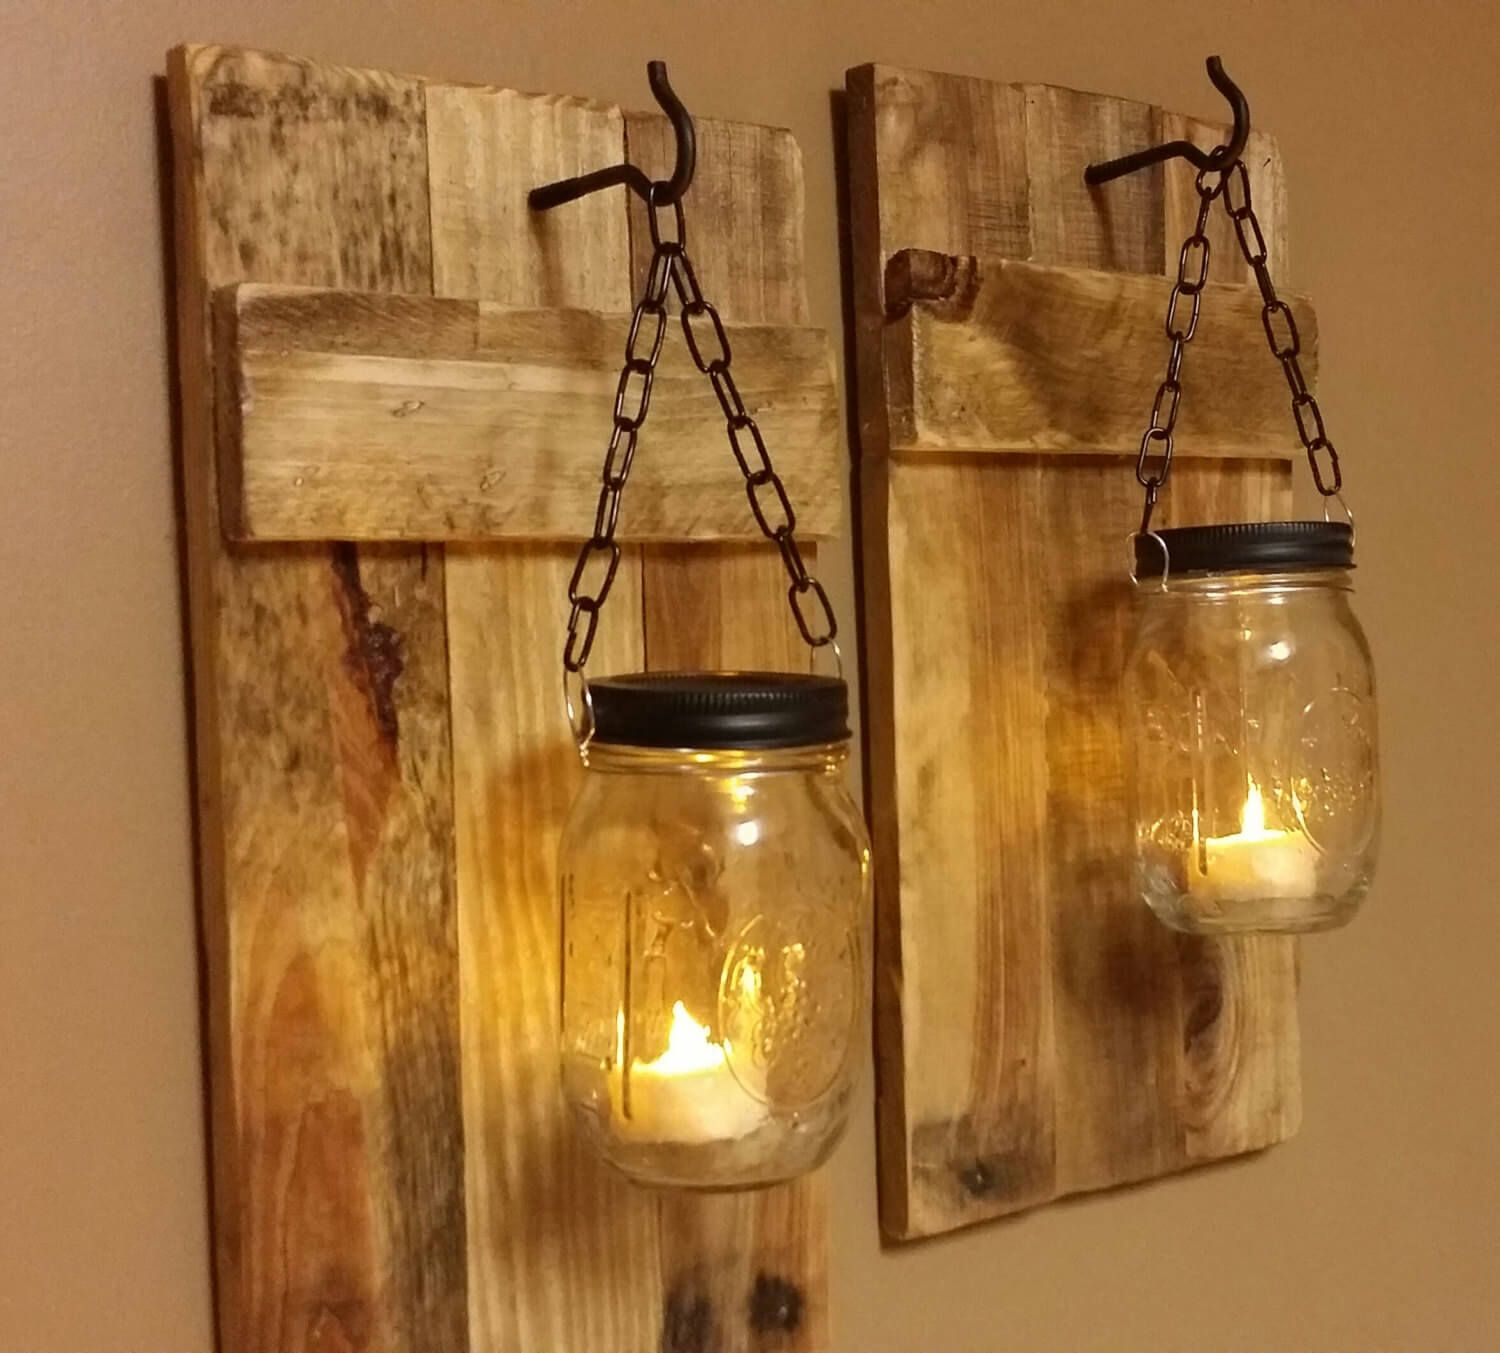 21 DIY Rustic Home Decor Ideas For Your Project